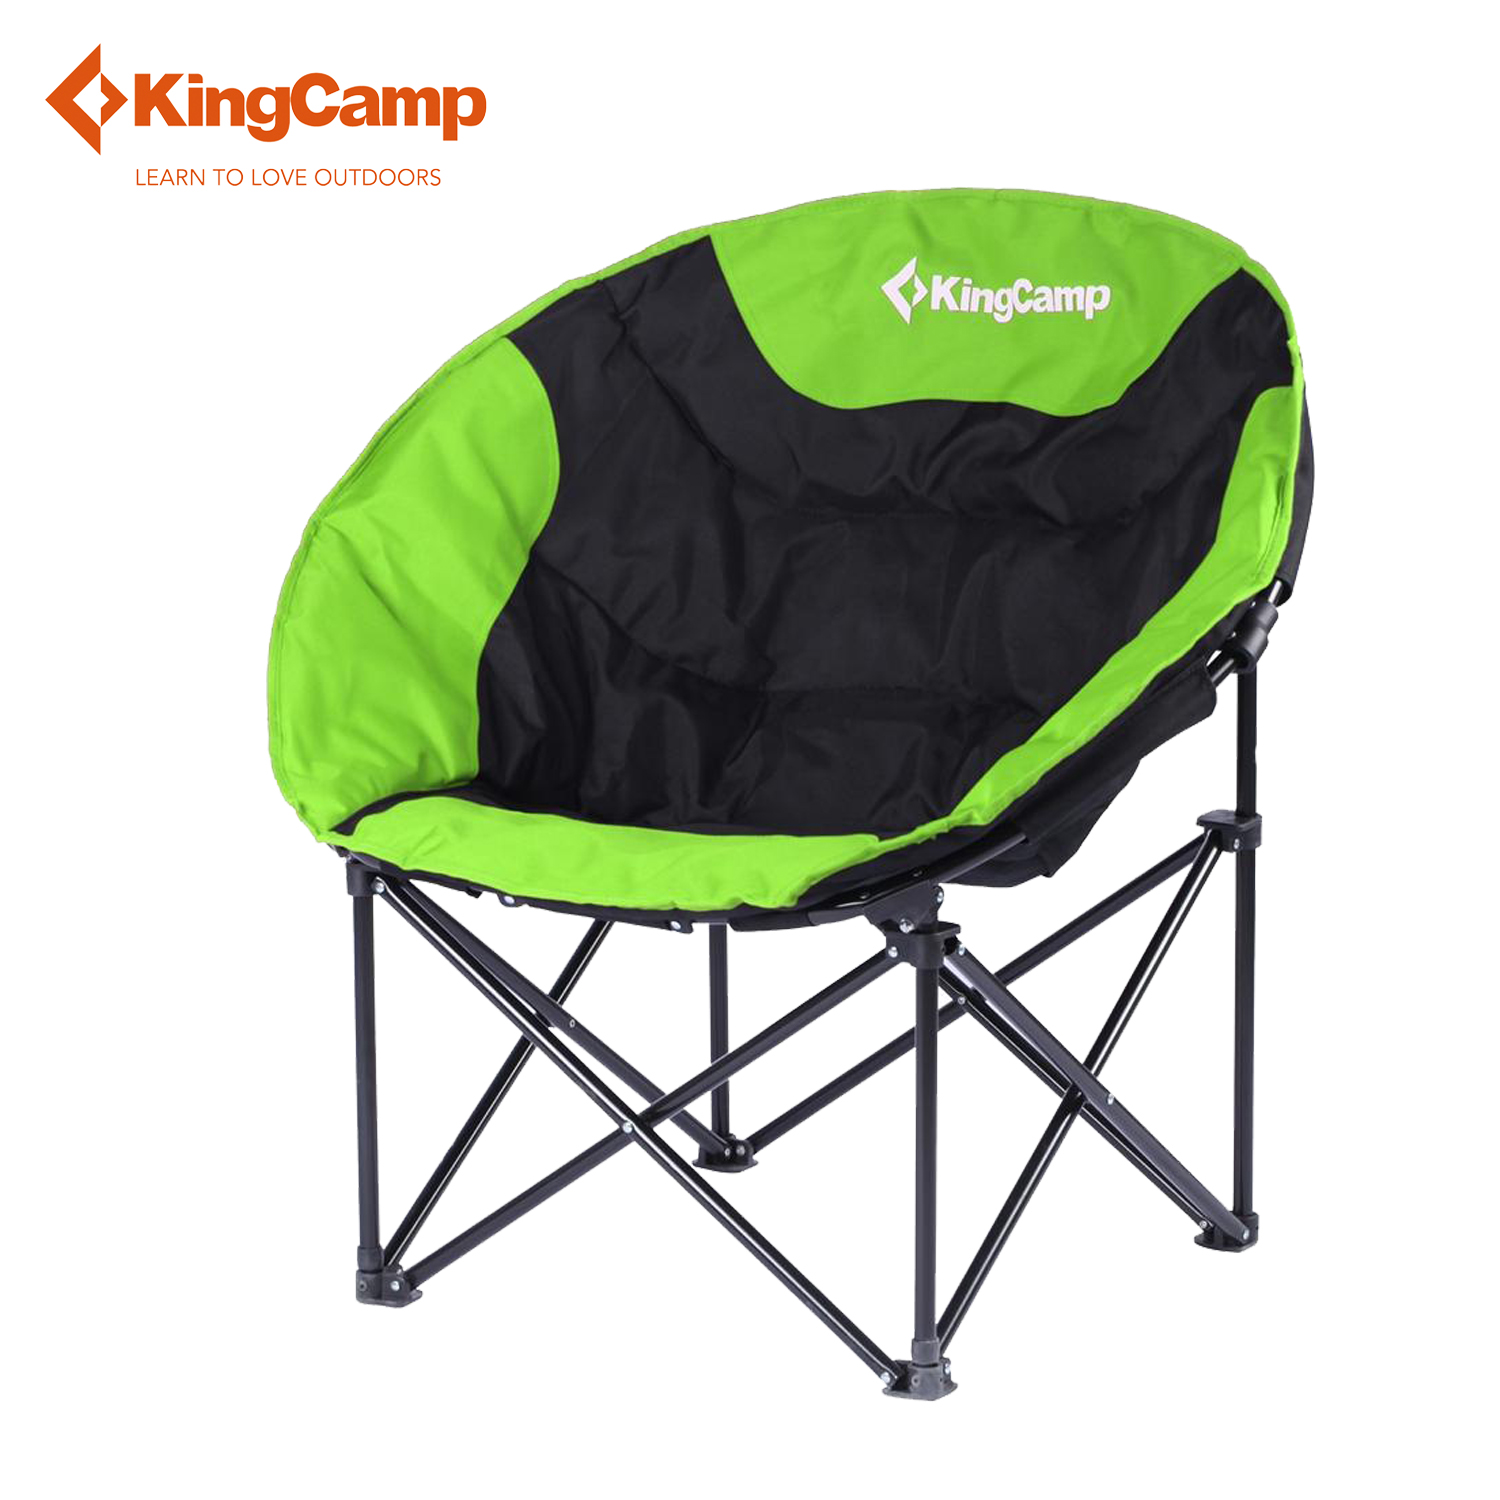 KingCamp Ultralight Leisure Camping Chair Heavy Duty Construction Green Fishi